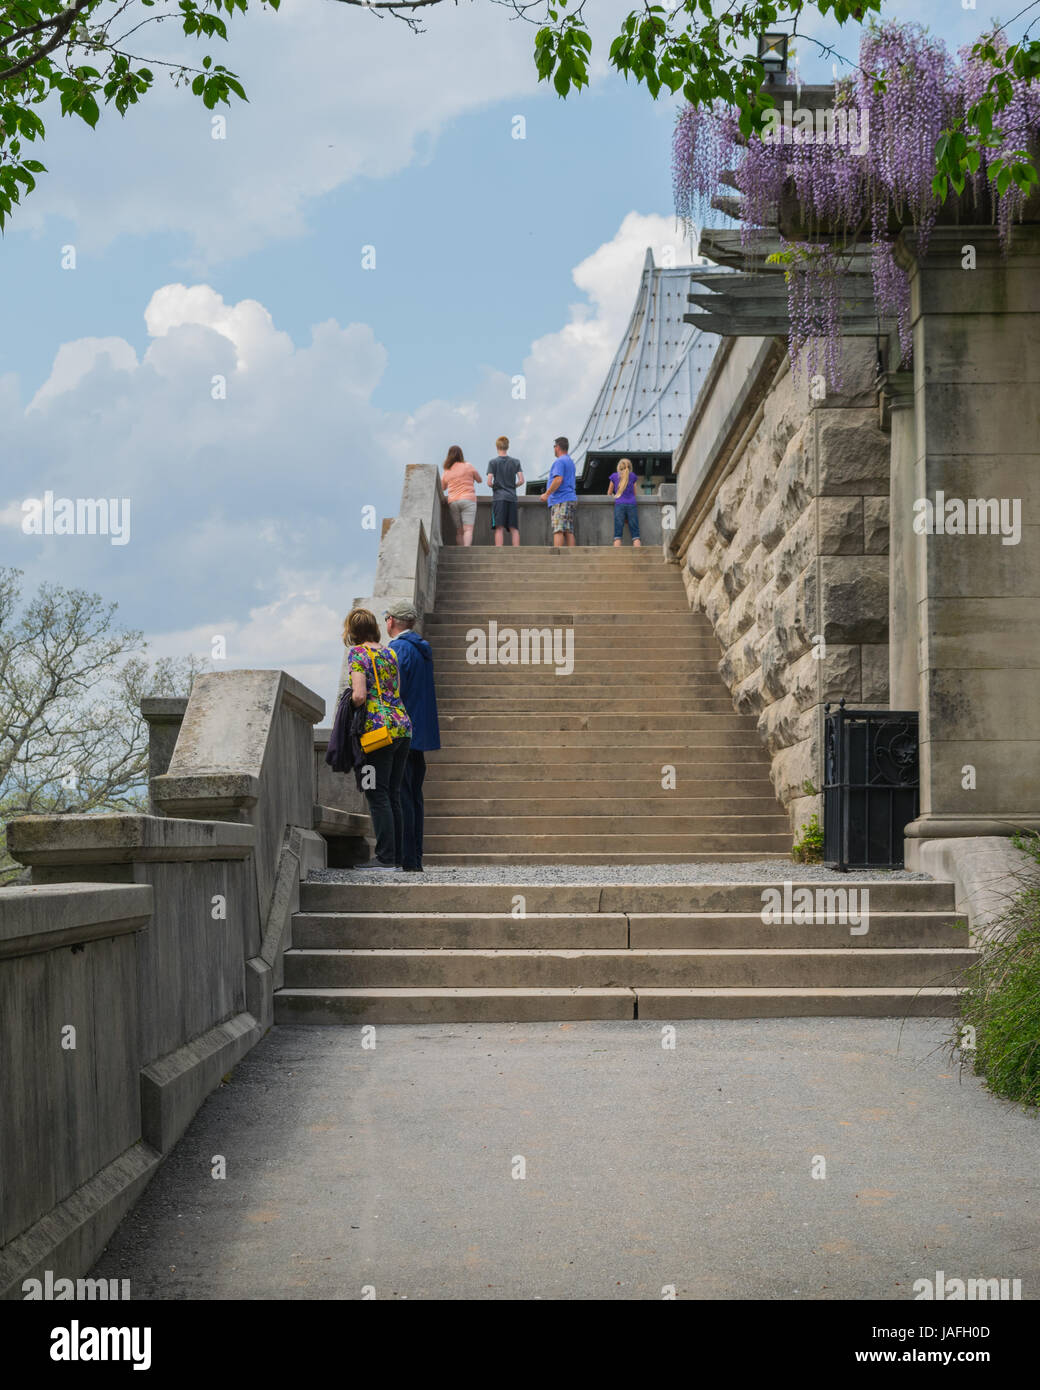 Biltmore Estate - stair case with a scenery - Stock Image